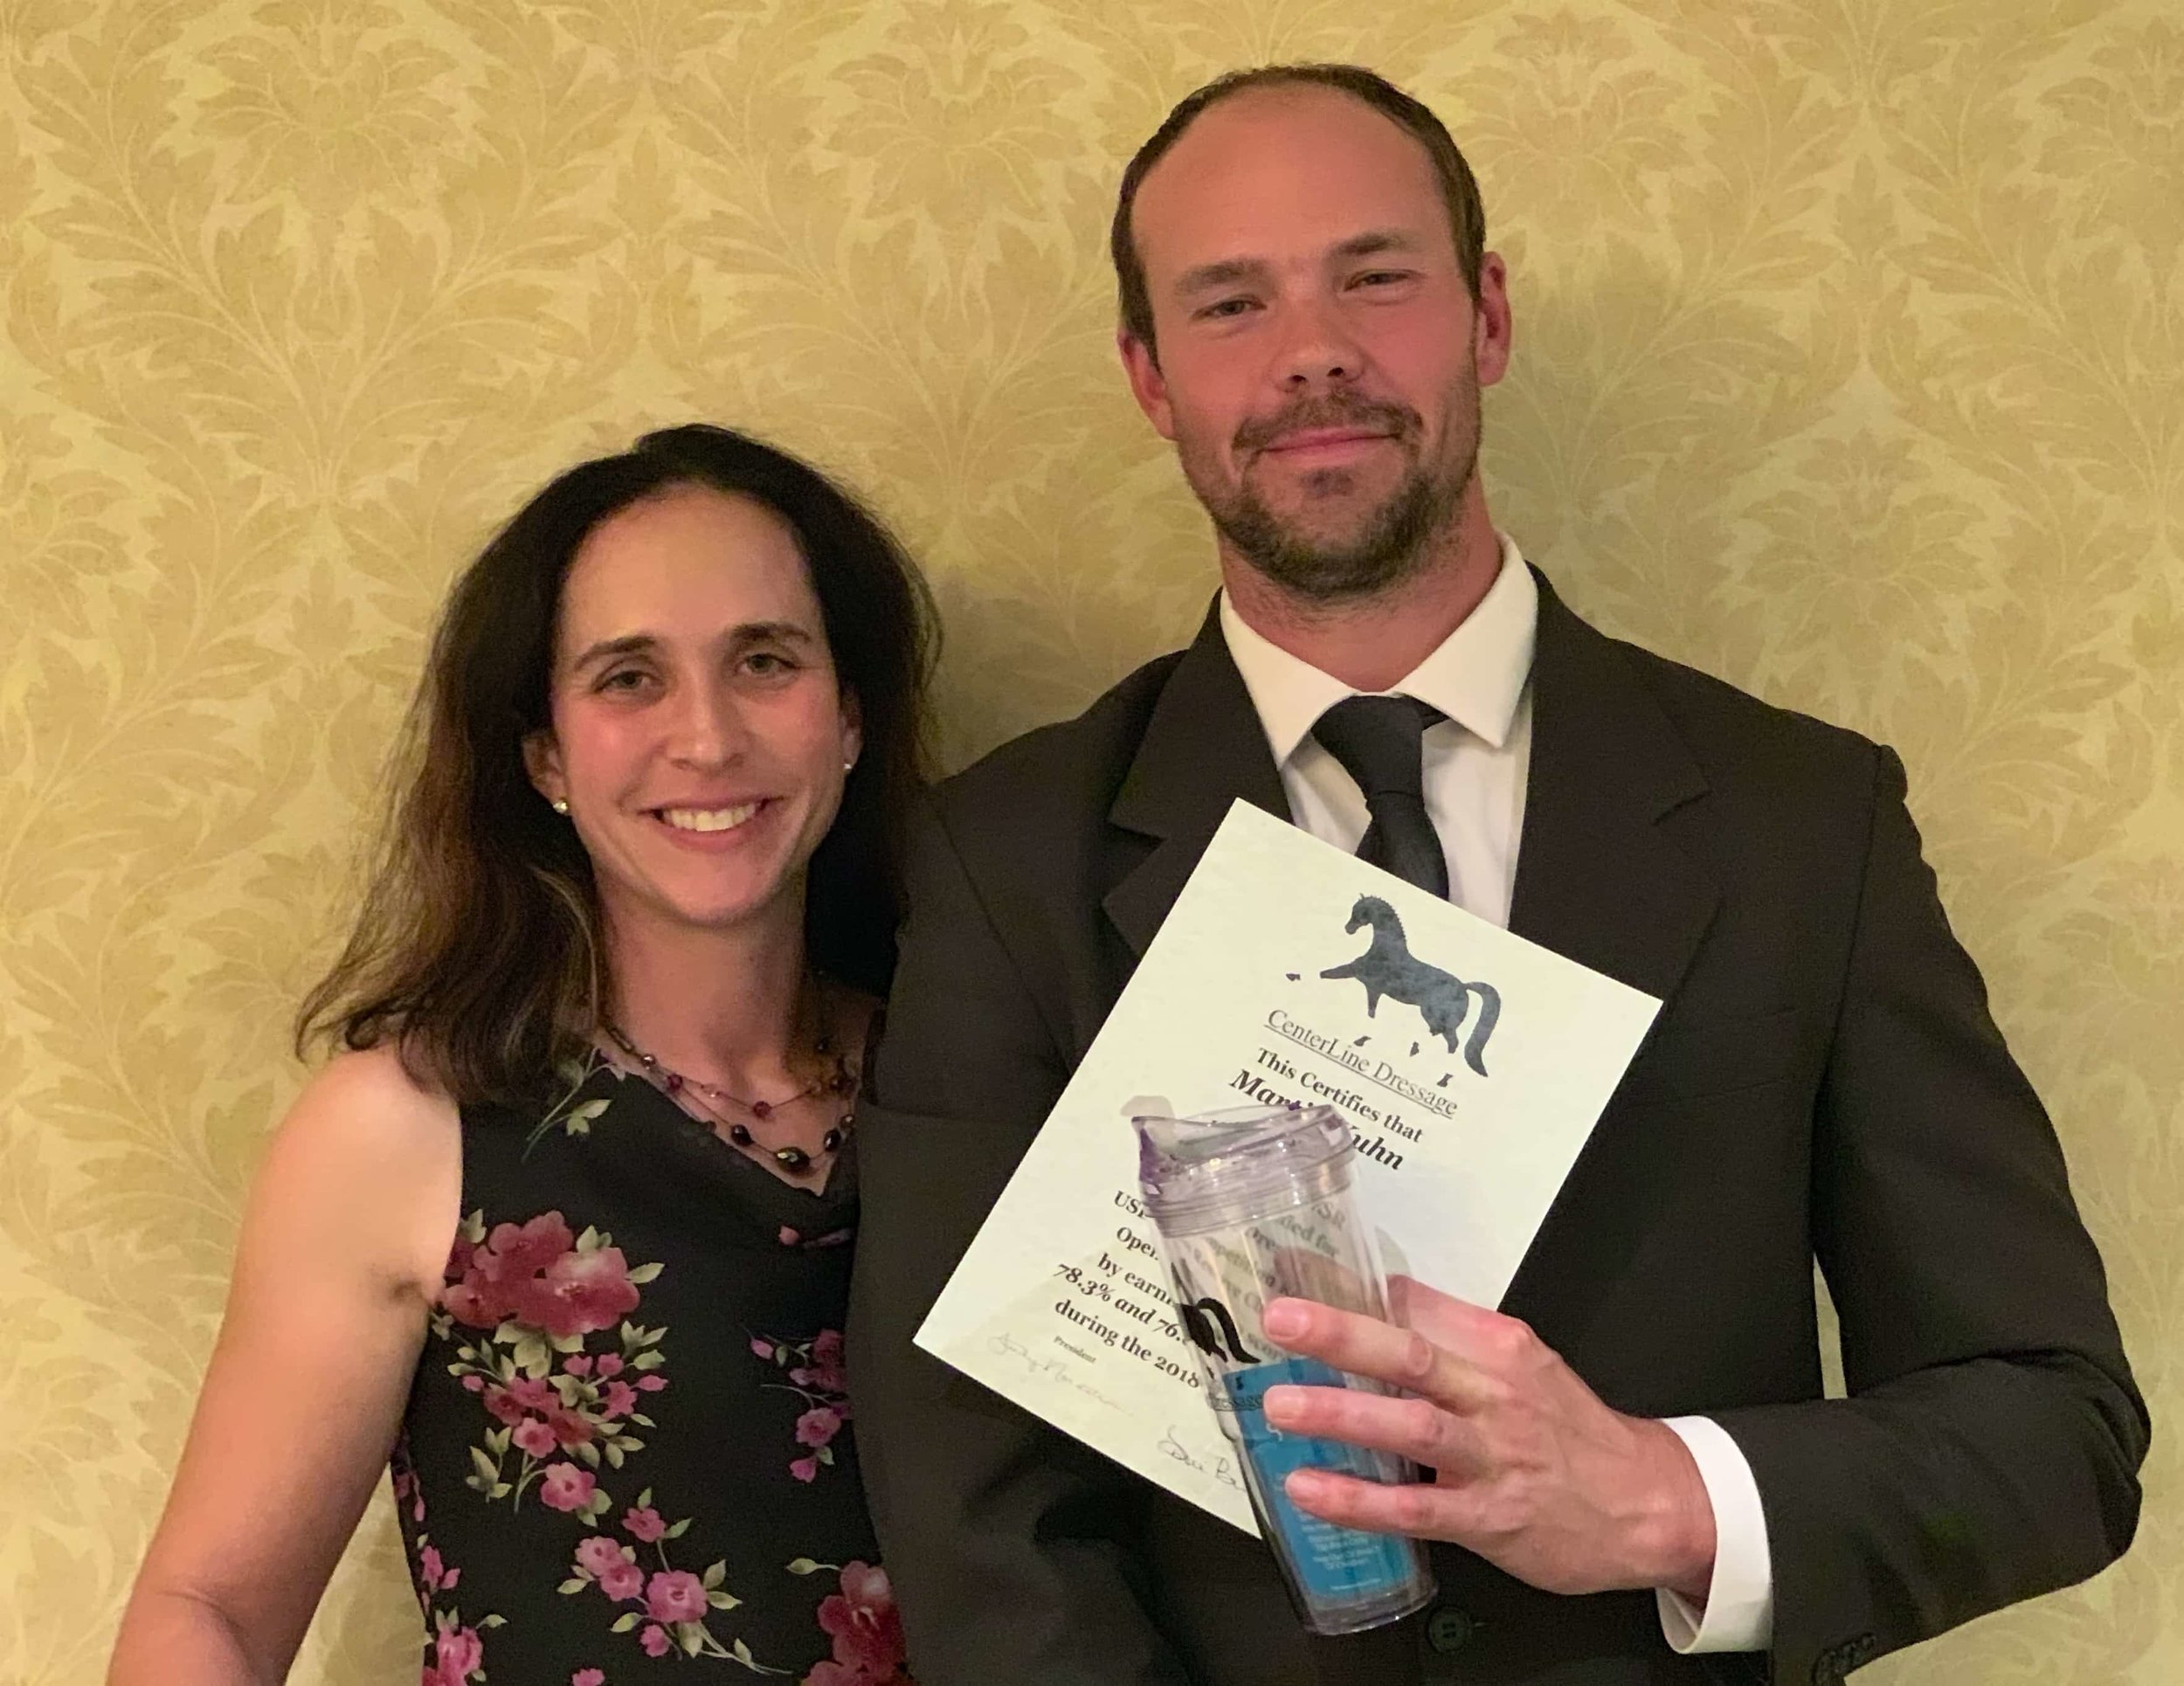 Kate Fleming-Kuhn & Martin Kuhn receiving an award